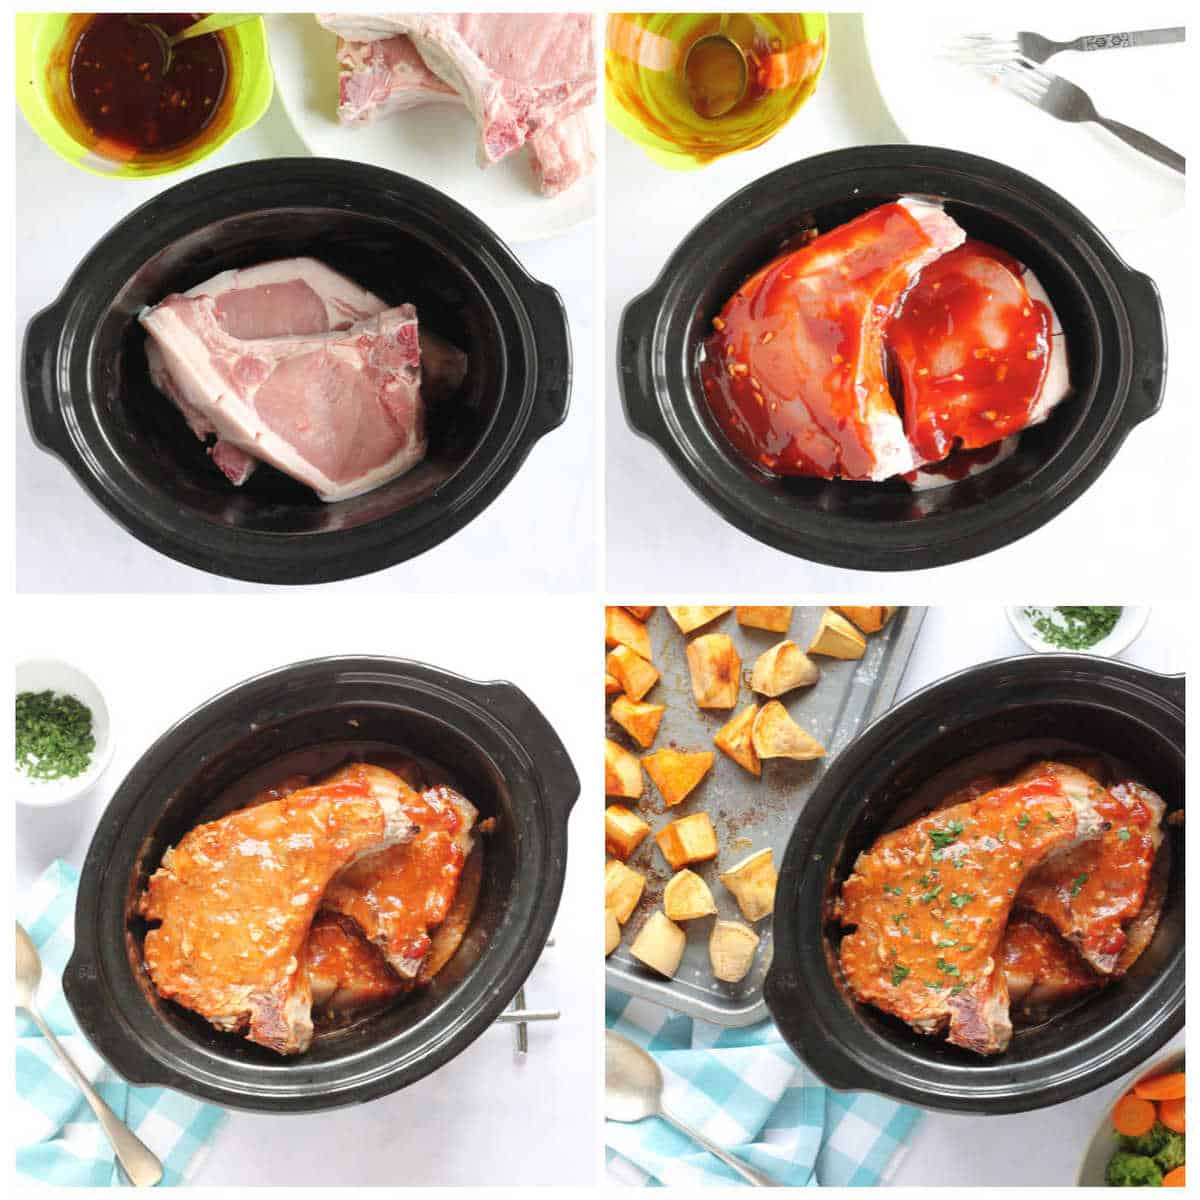 Step-by-step slow cooker pork chops photo instructions.